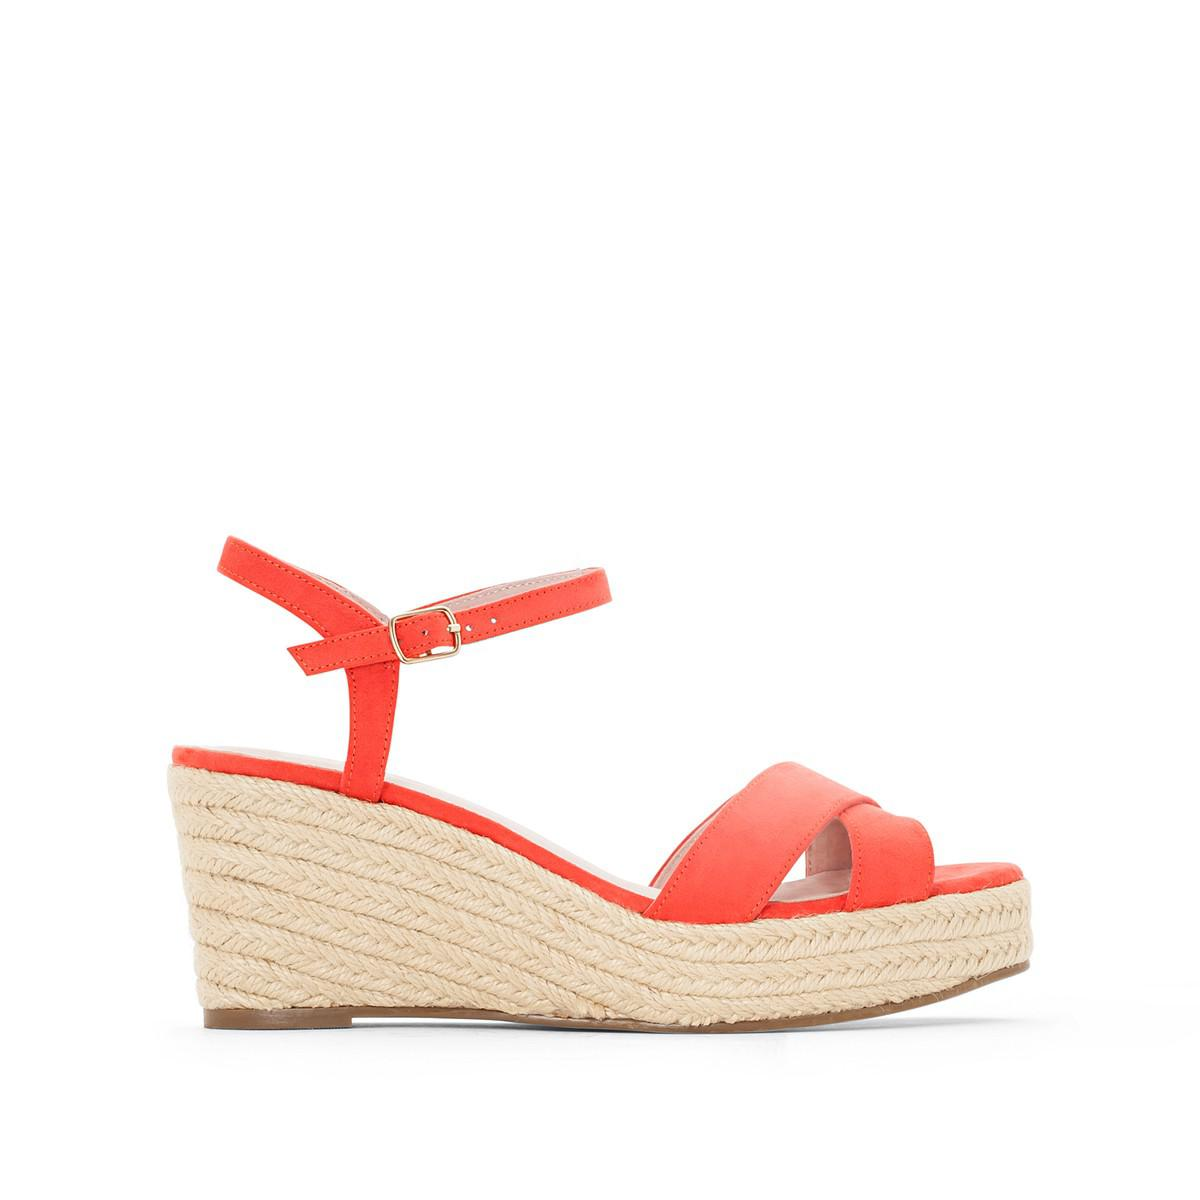 La Redoute Collections Sandals with Crossover Straps and Rope Wedge Sole new arrival online newest for sale discount find great outlet hot sale u3HDBg6